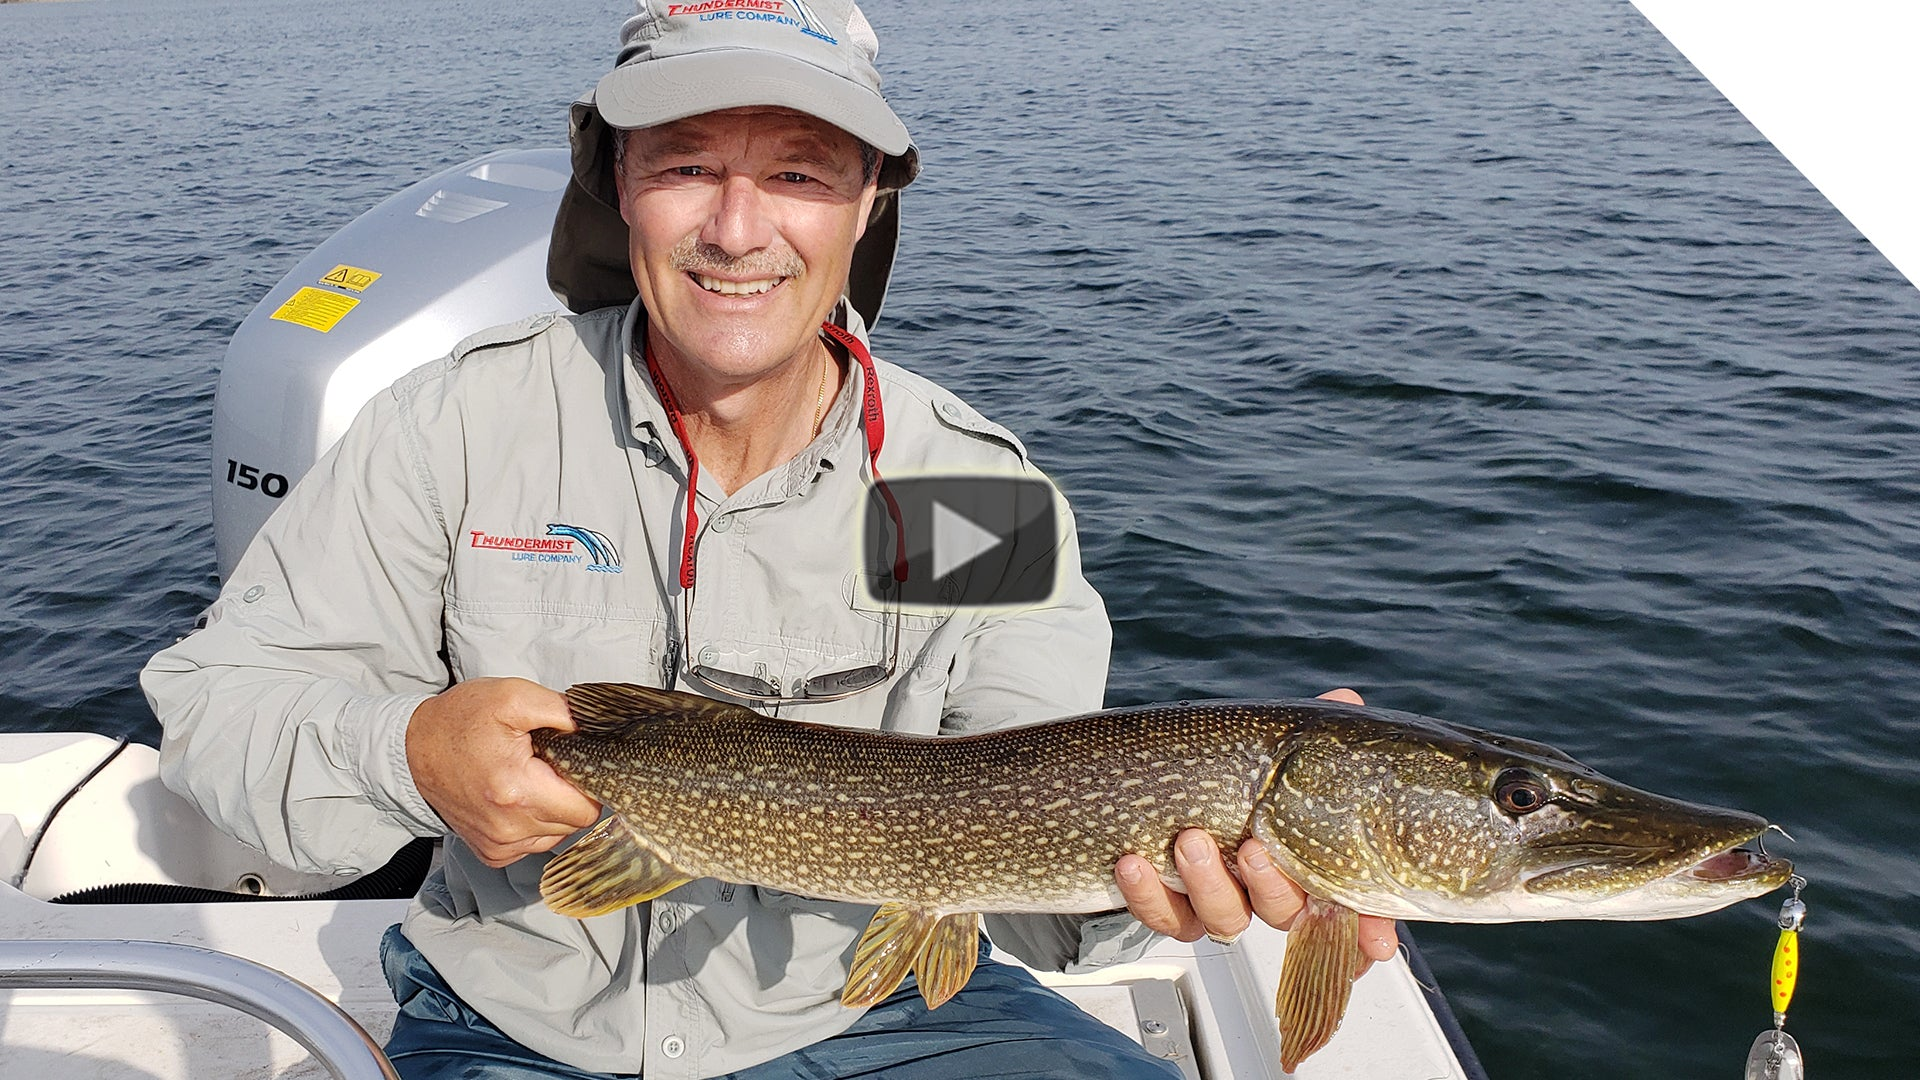 Pike, Largemouth Bass and panfish - Rondeau Bay Action!